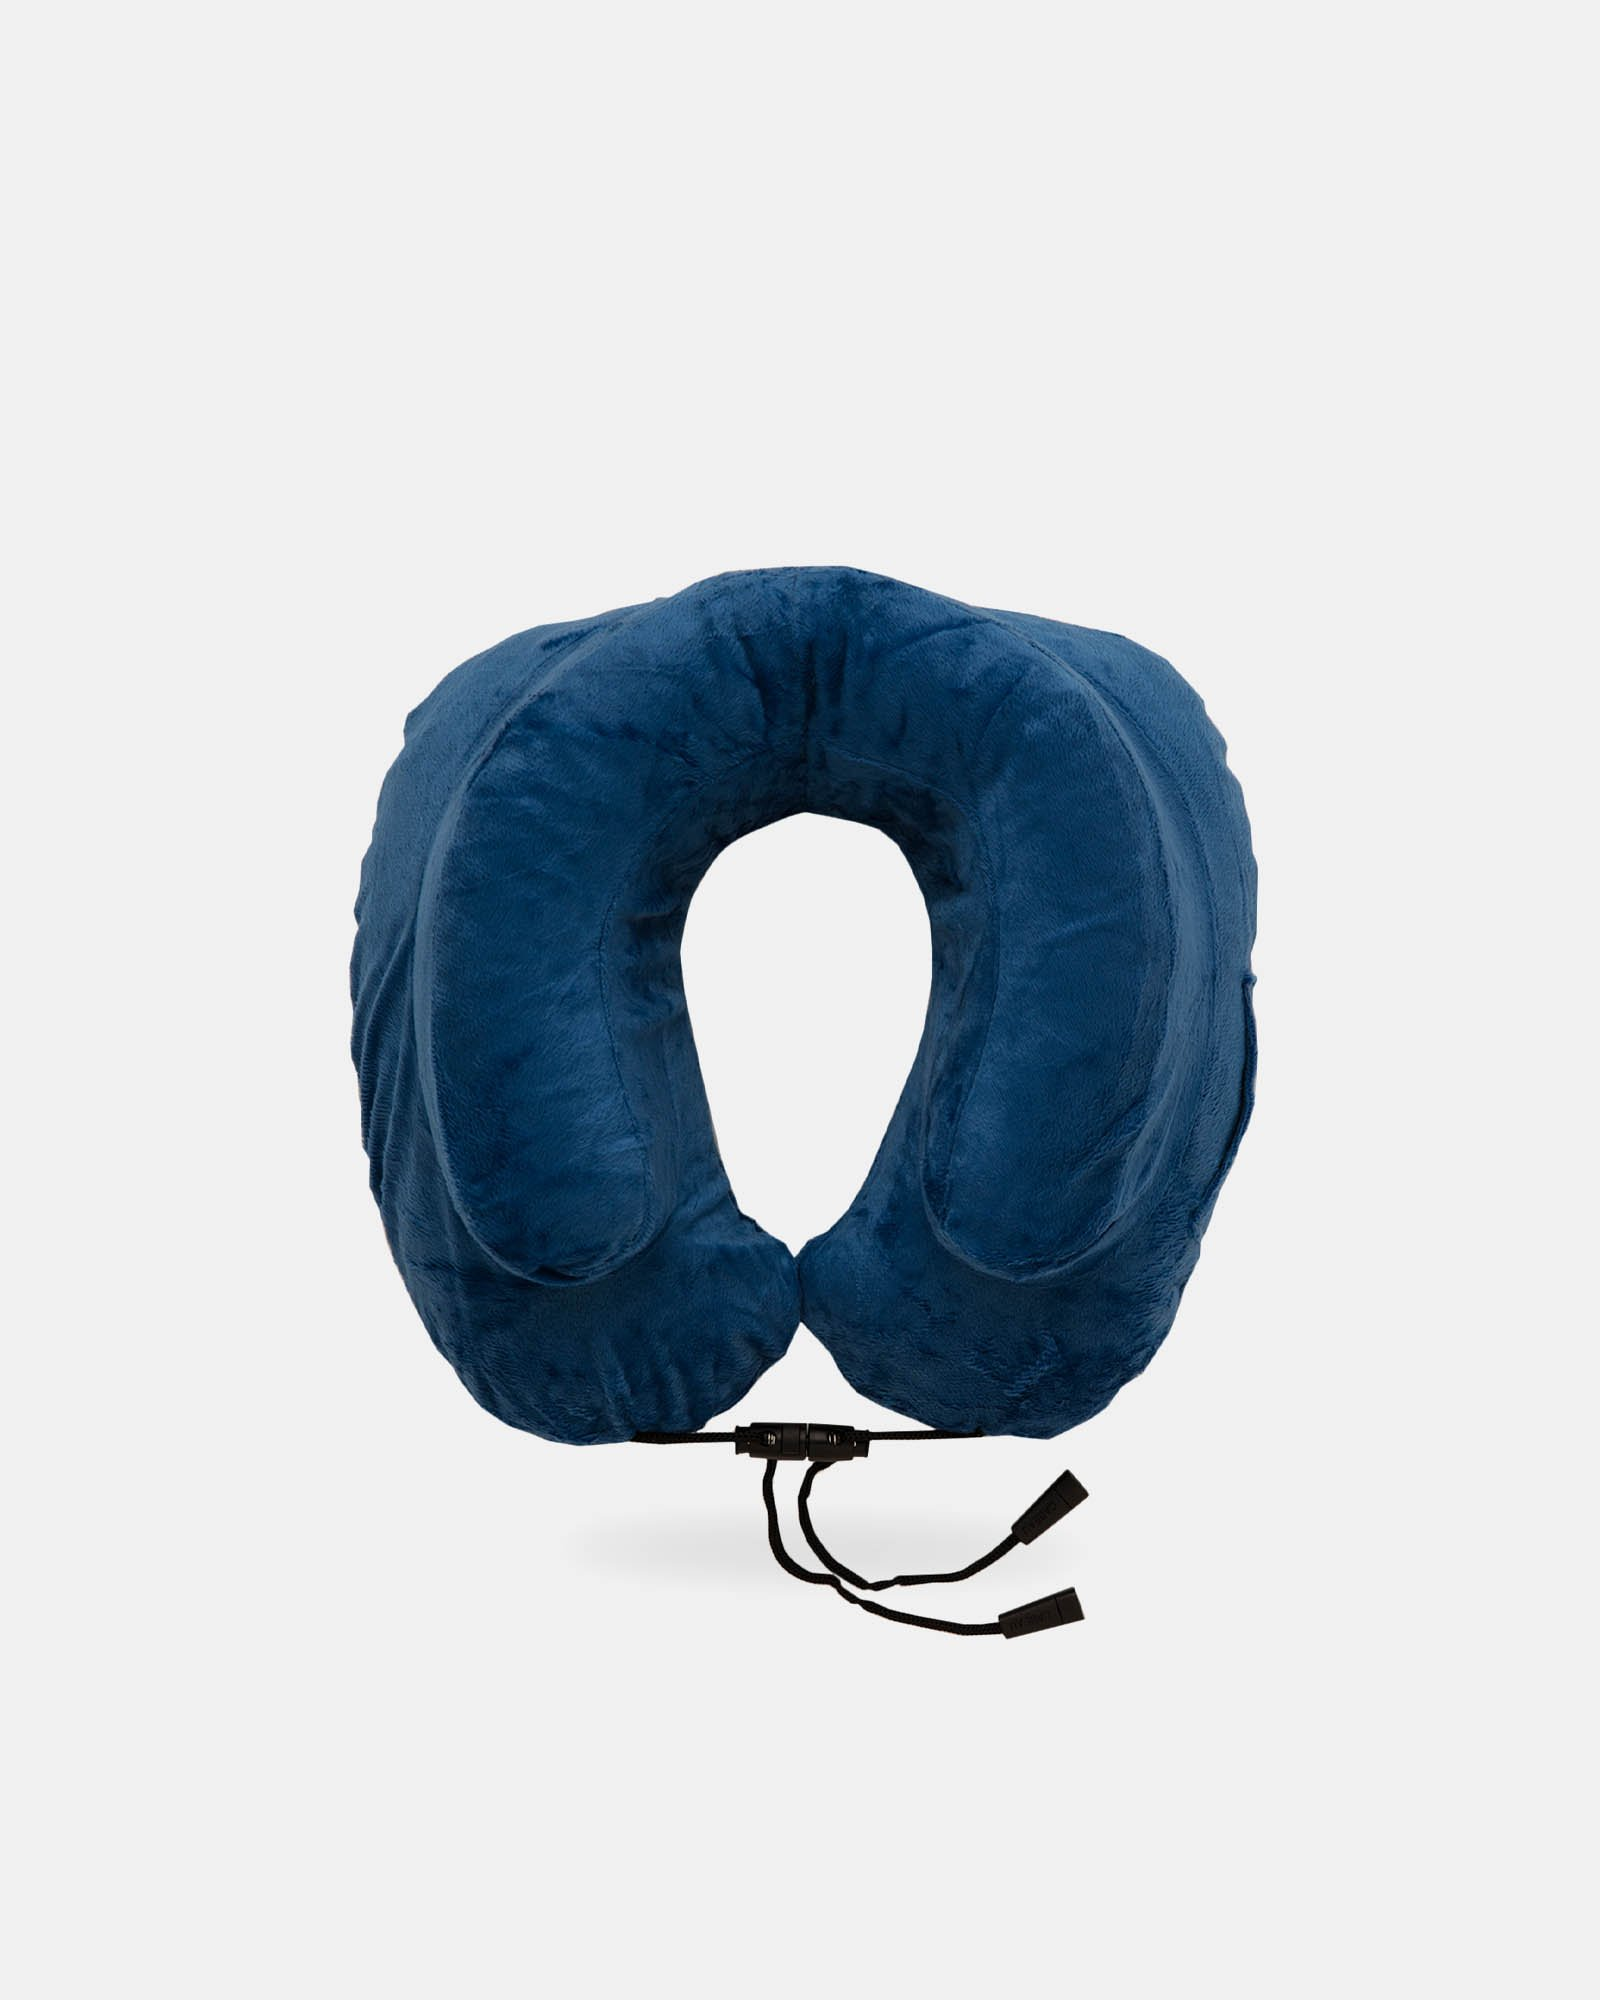 AIR EVOLUTION™ - THE INFLATABLE TRAVEL PILLOW  - Royal - Cabeau - Zoom